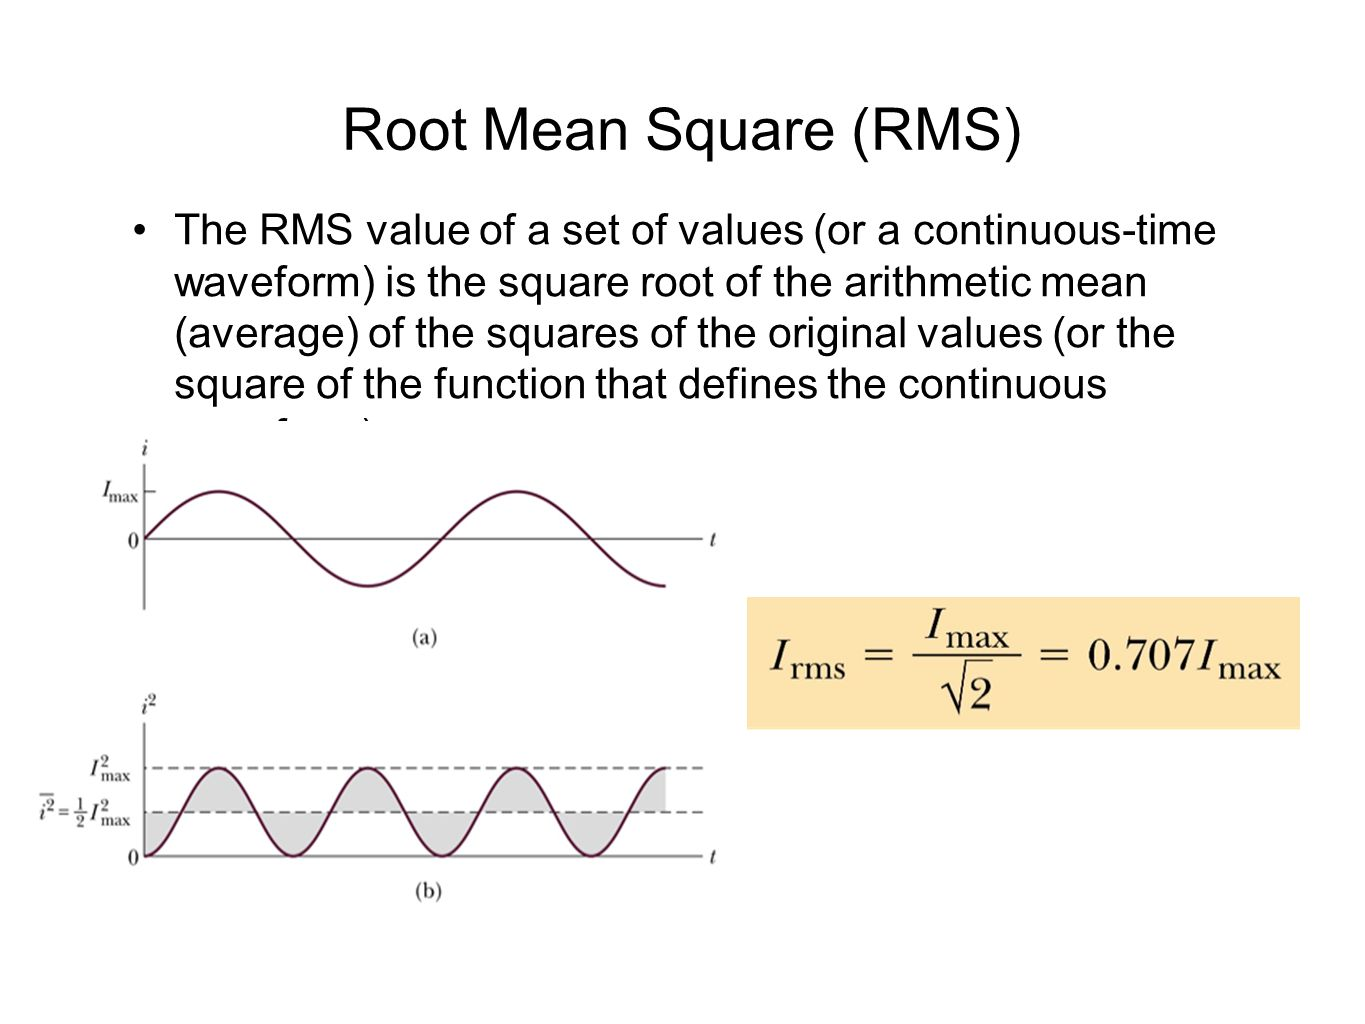 Root Mean Square (RMS) The RMS value of a set of values (or a continuous-time waveform) is the square root of the arithmetic mean (average) of the squares of the original values (or the square of the function that defines the continuous waveform).